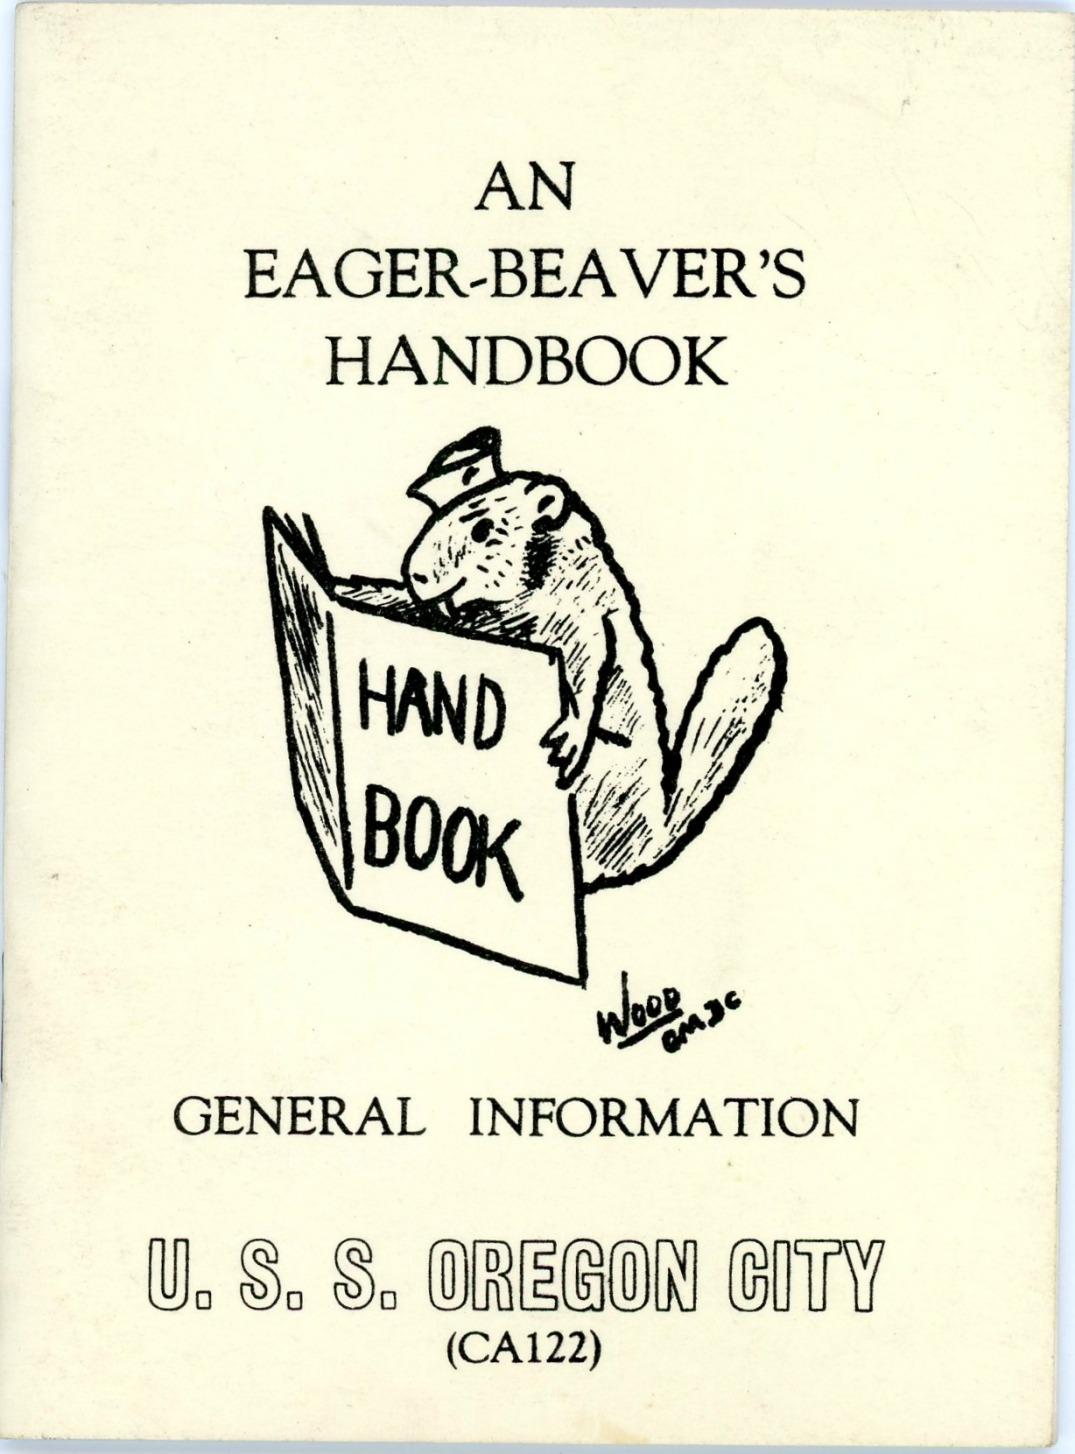 001 USS Oregon City Eager Beaver's Handbook